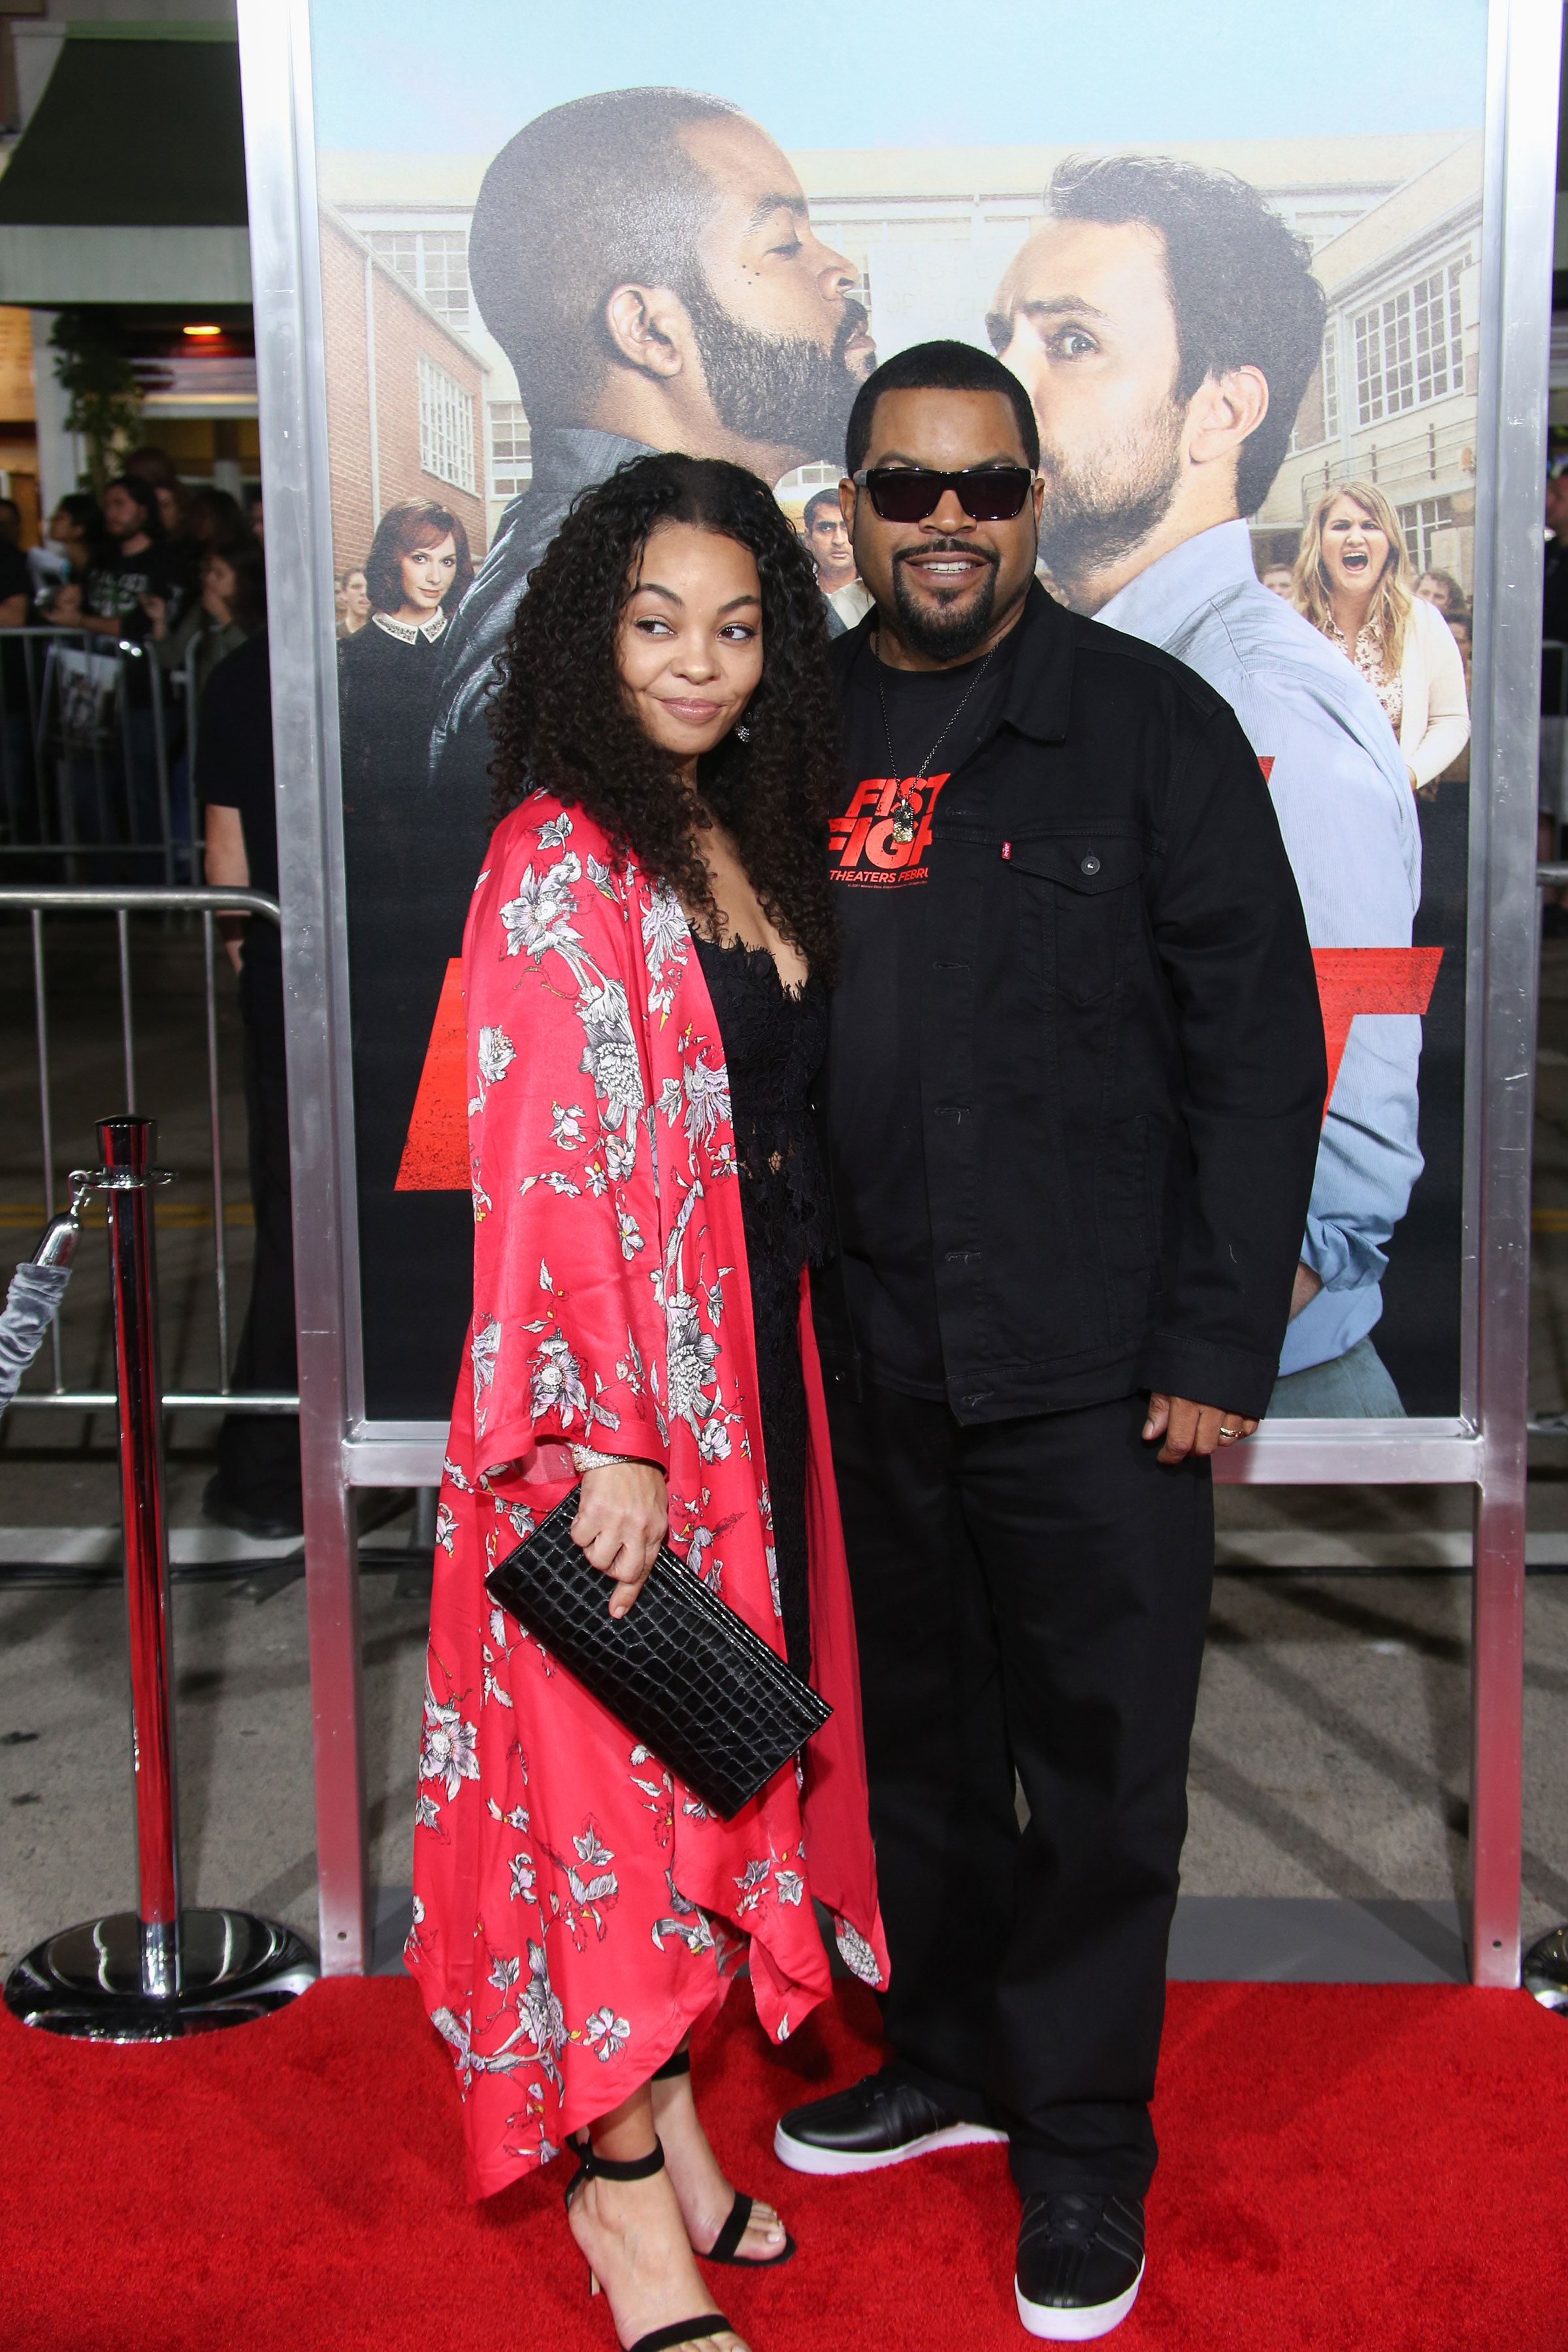 "02/13/2017 - Ice Cube, Kimberly Woodruff - ""Fist Fight"" Los Angeles Premiere - Arrivals - Regency Village Theater - Westwood, CA, USA - Keywords: Vertical, Comedy, Red Carpet Event, Person, People, Movie Premiere, Film Industry, Arrival, Portrait, Photography, Arts Culture and Entertainment, Celebrity, Celebrities, City of Los Angeles, California Orientation: Portrait Face Count: 1 - False - Photo Credit: PRPhotos.com - Contact (1-866-551-7827) - Portrait Face Count: 1"